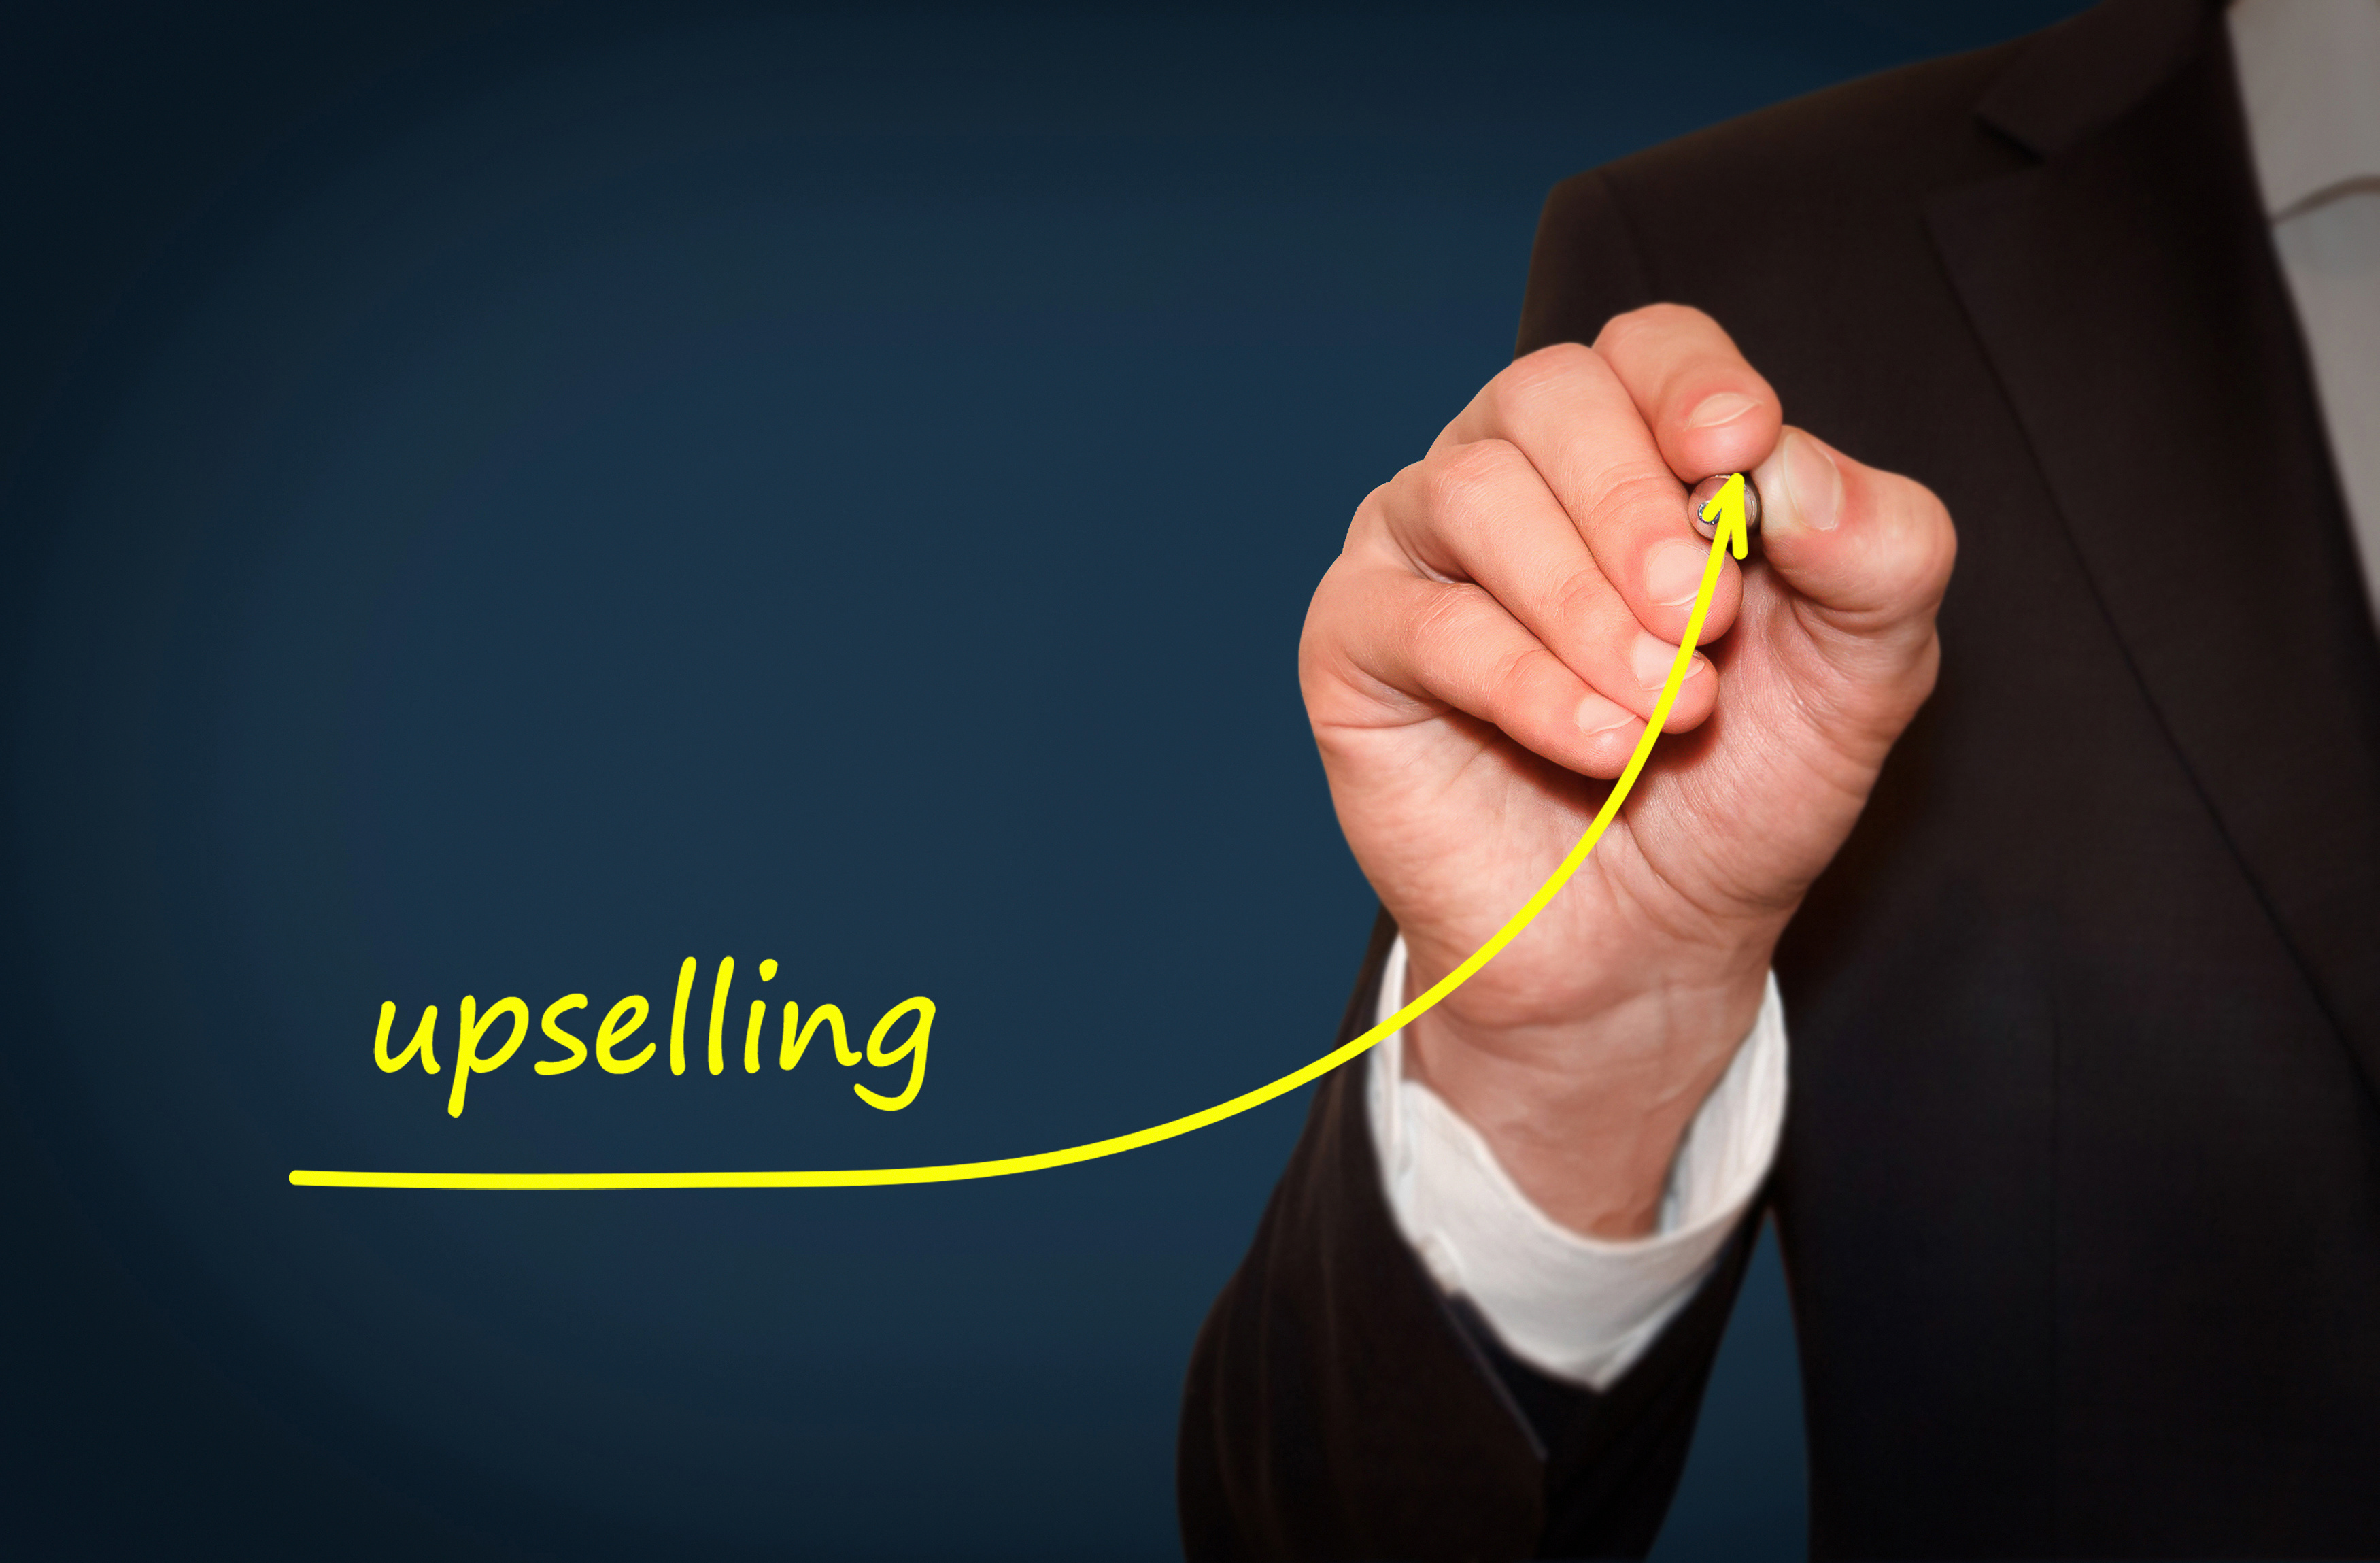 Image How to Use Upselling to Increase Customer Happiness, Retention and Revenue